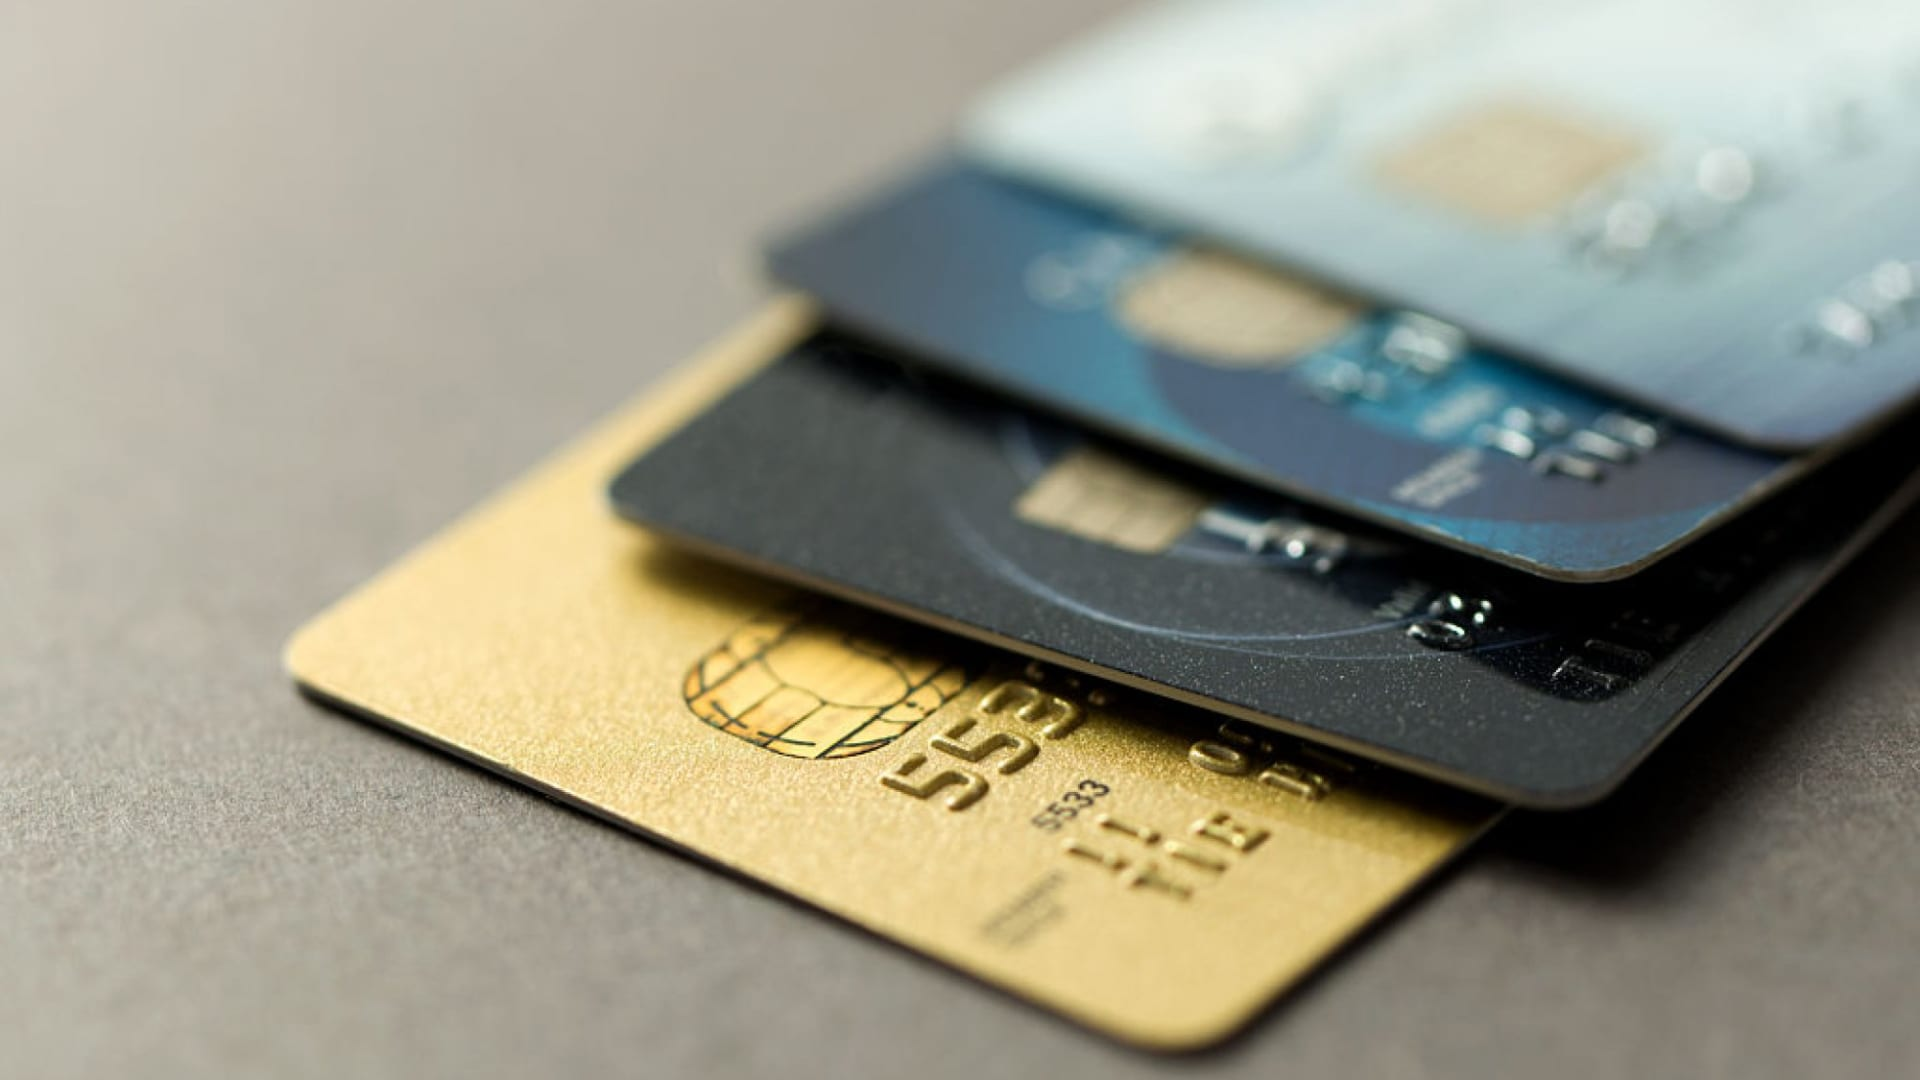 New X1 Visa Card Bases Your Spending Limit on Your Income, Not Your Credit Score